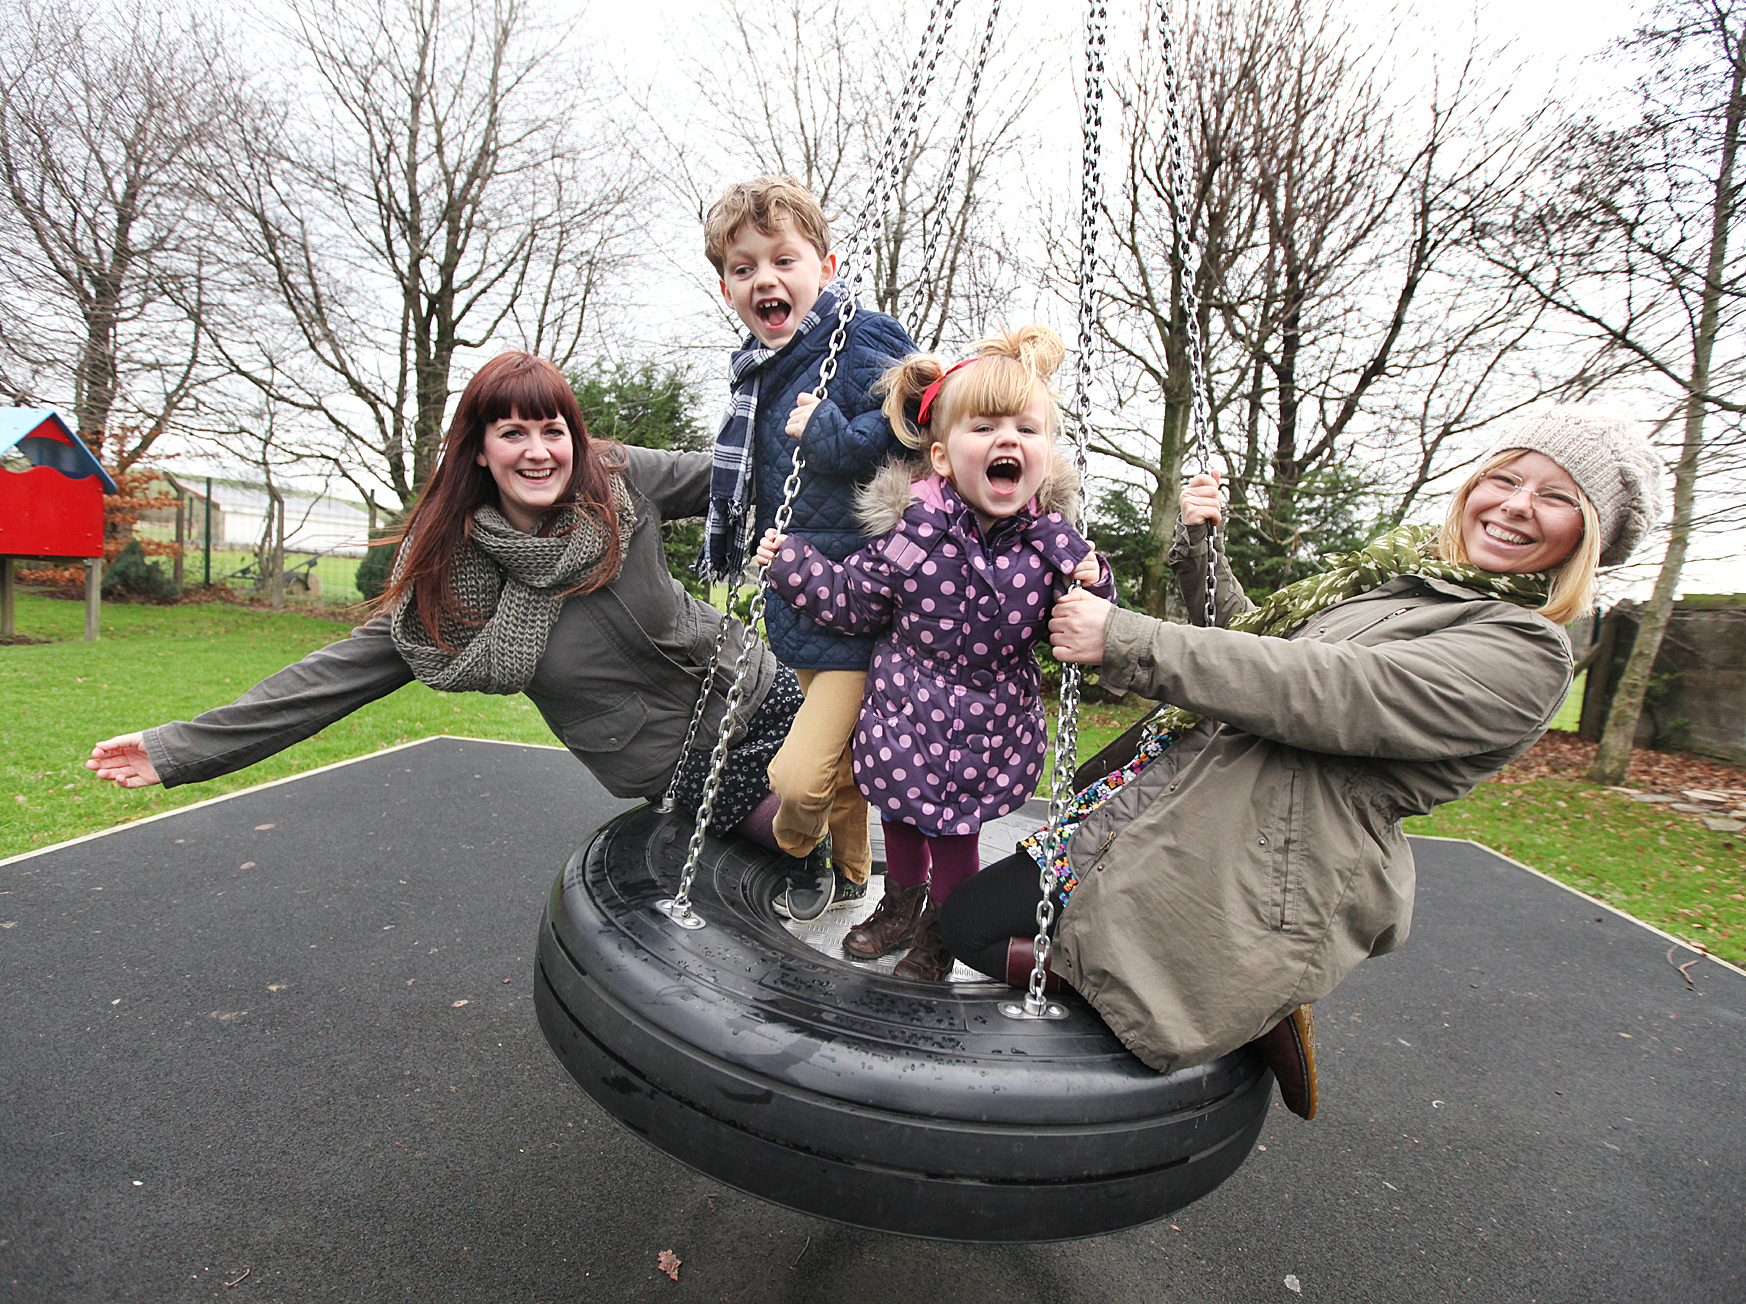 Launching a campaign to improve Gargrave play area are mums Gemma Tetley, left, and Sarah Pawson with Vincent and Poppy Tetley